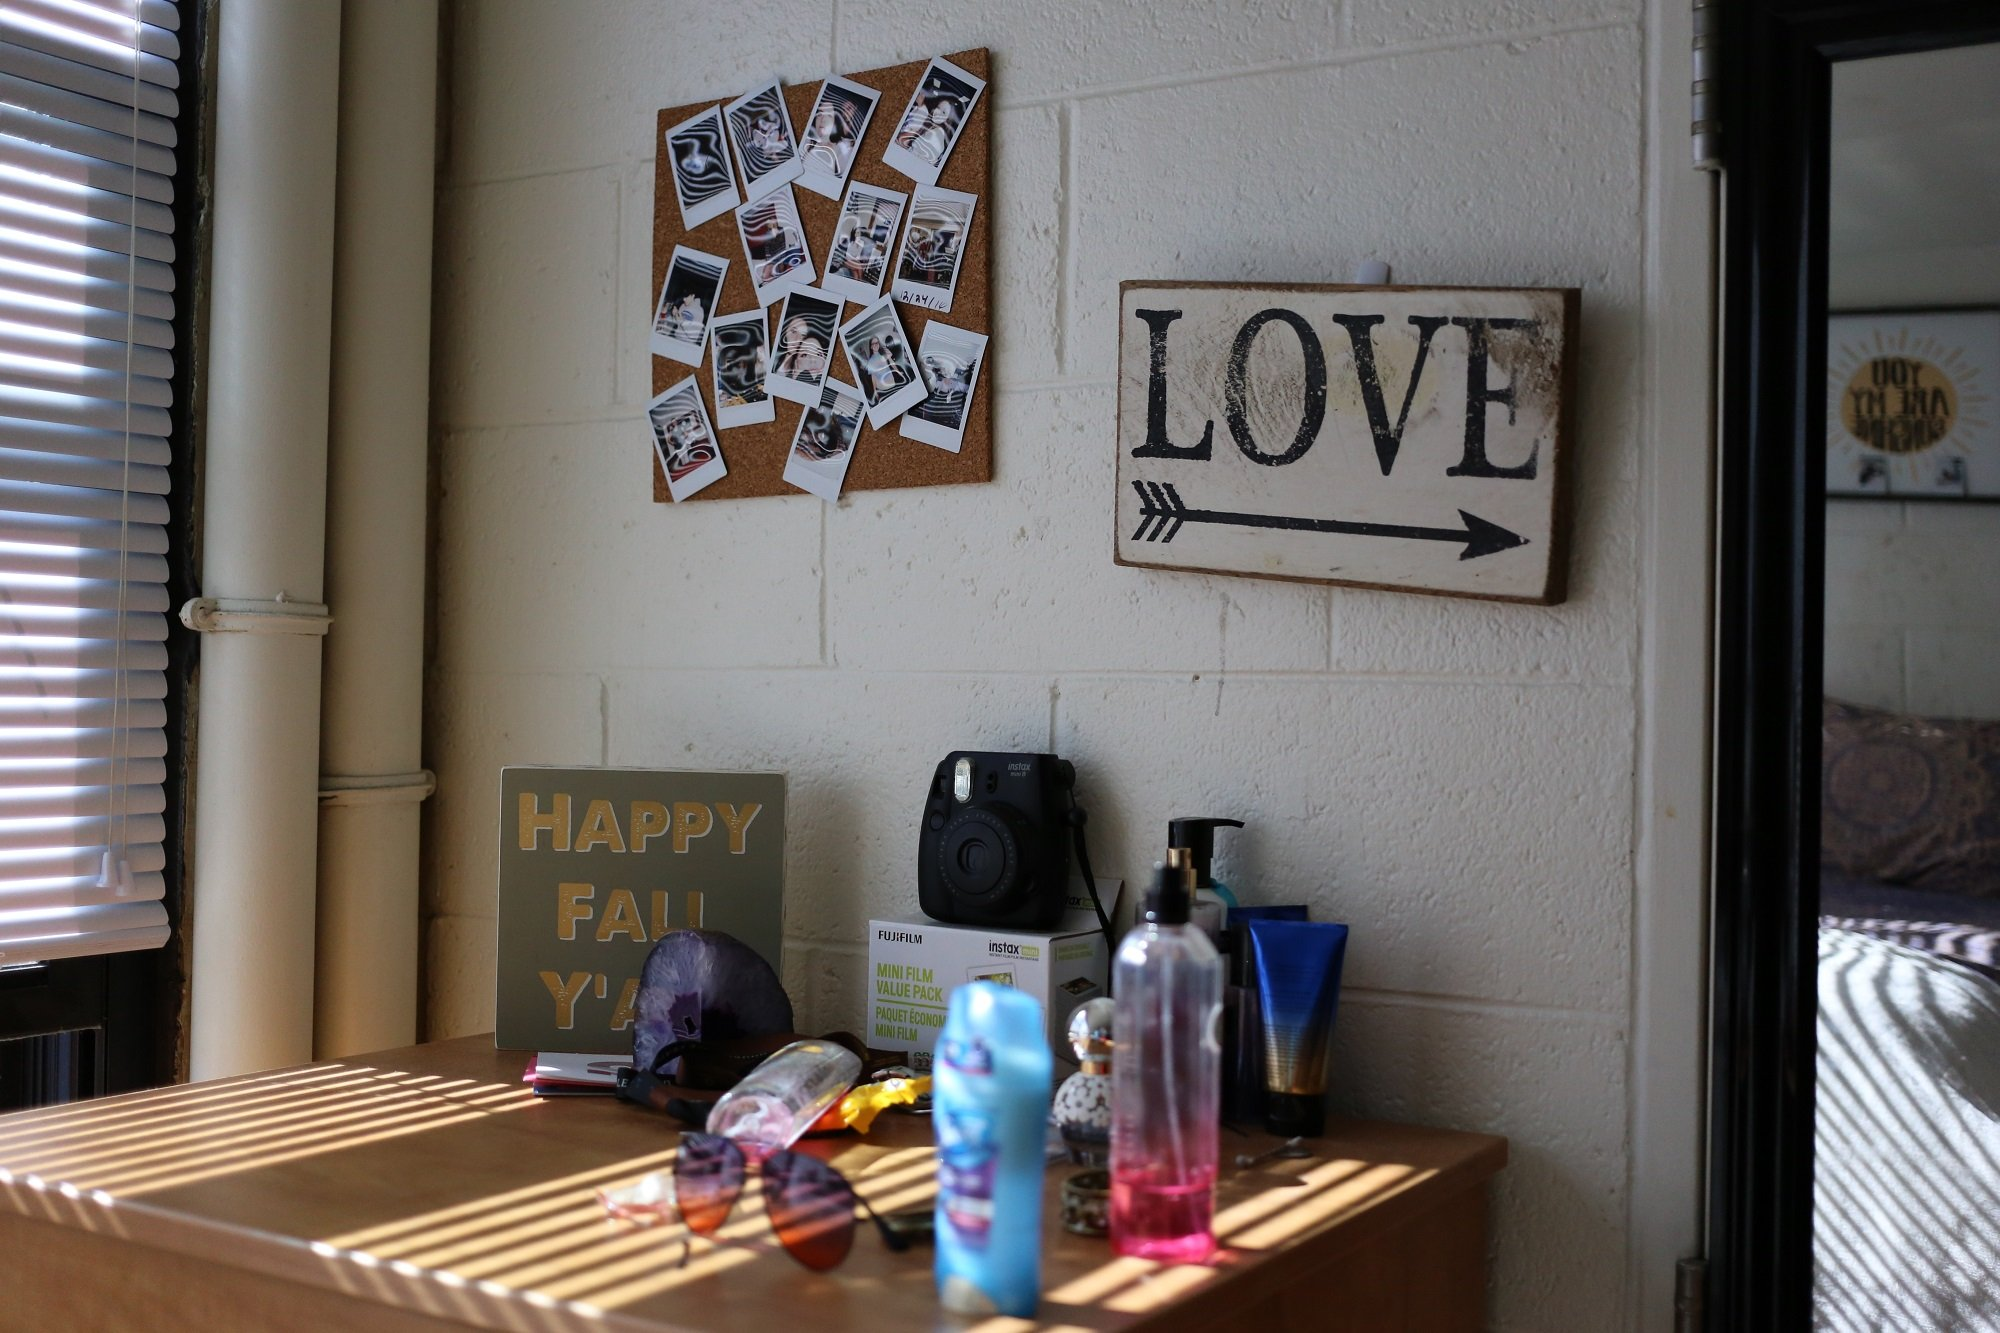 A photo of a bulletin board and printed sign on the dorm room wall of a student